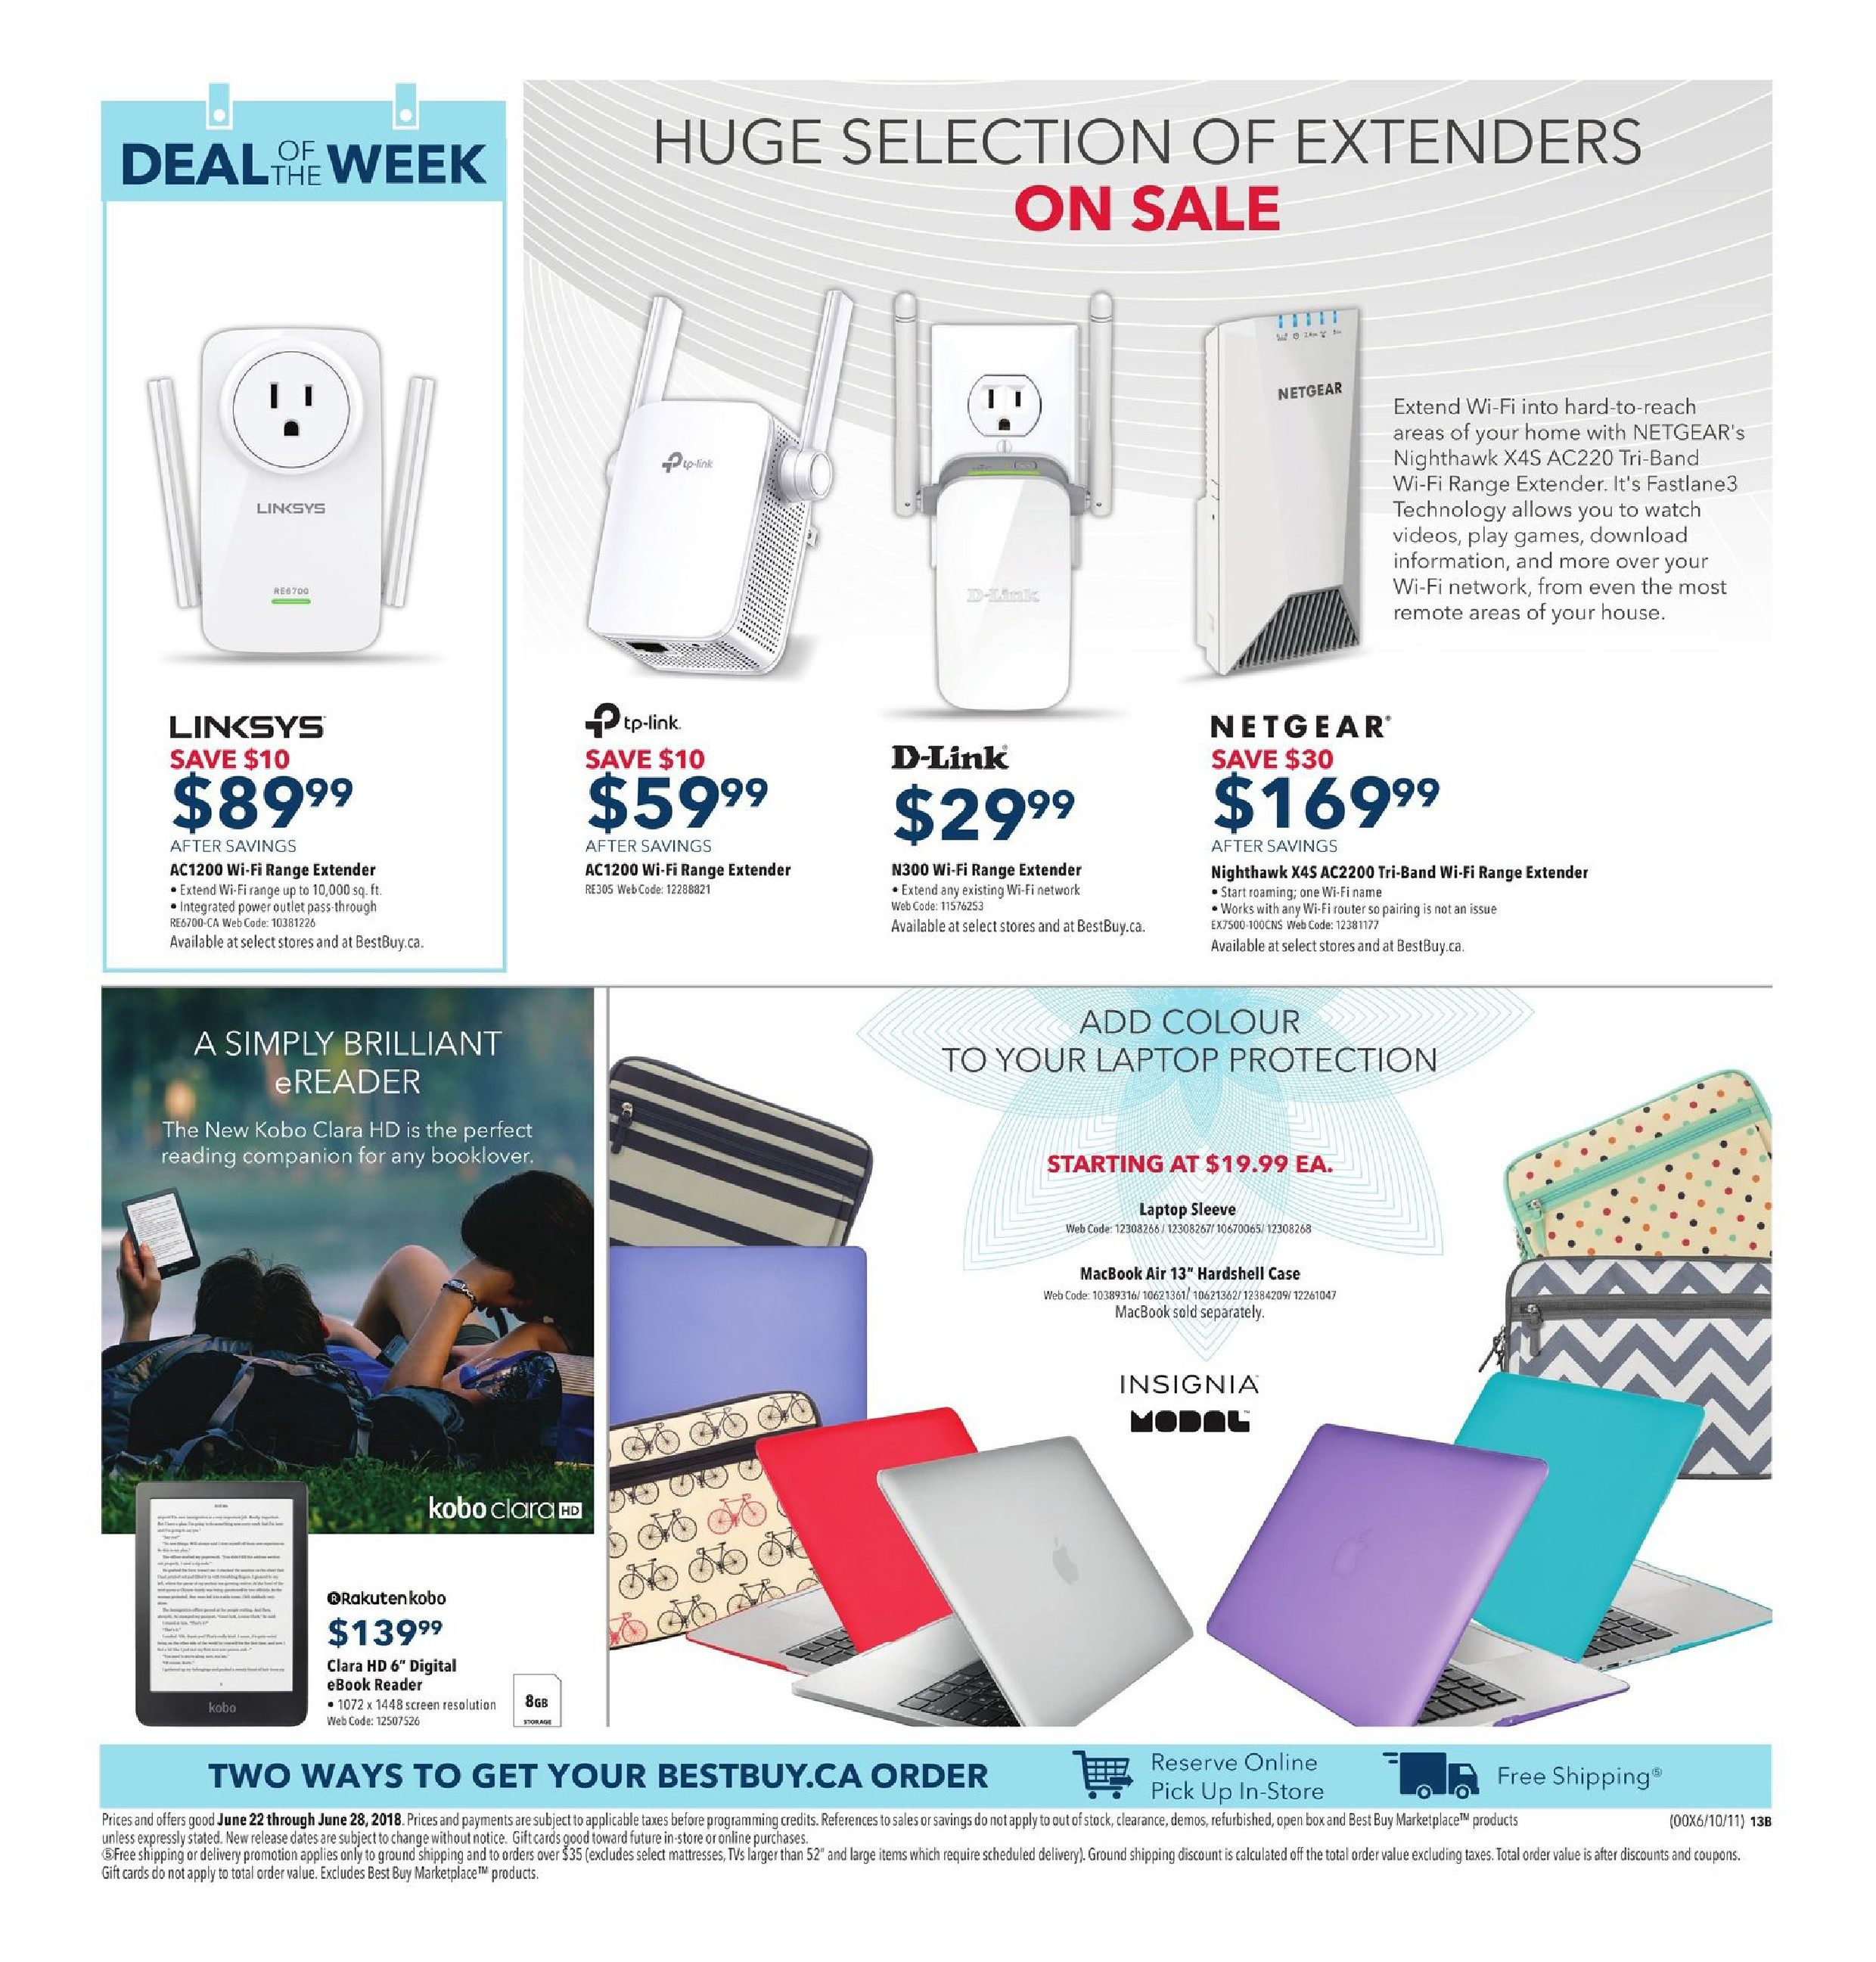 Best buy weekly flyer weekly dont miss these hot deals jun 22 best buy weekly flyer weekly dont miss these hot deals jun 22 28 redflagdeals fandeluxe Images